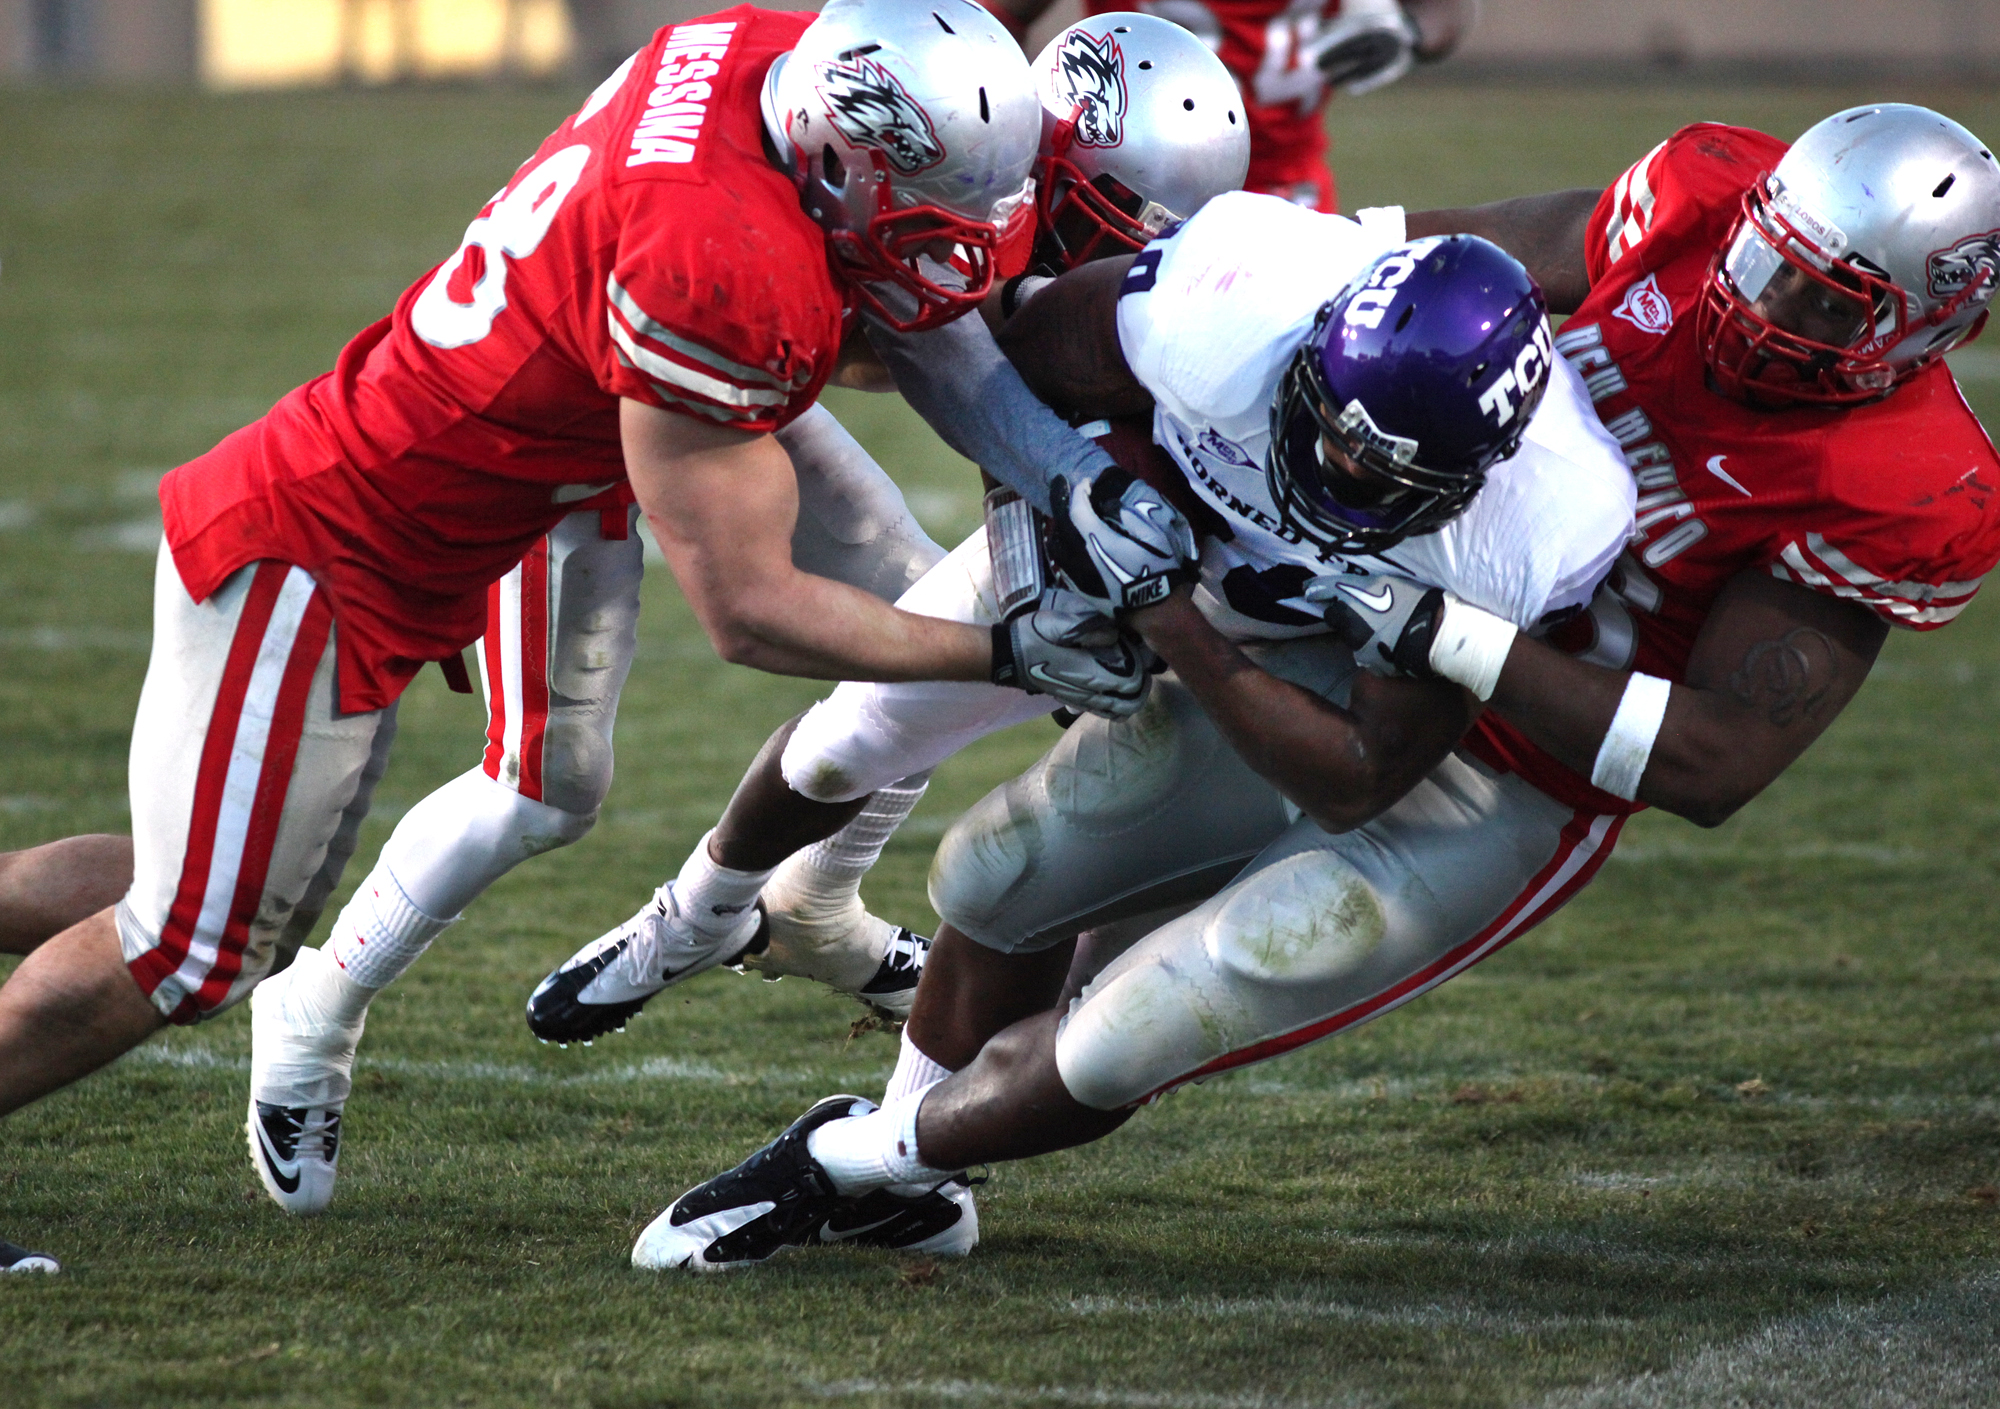 ALBUQUERQUE, NM - NOVEMBER 27: Aundre Dean #30 of the TCU Horned Frogs carries the ball against Carmen Messina #58 (L) and Jaymar Latchison #48 of the New Mexico Lobos in the 3rd quarter on November 27, 2010 at University Stadium in Albuquerque, New Mexic